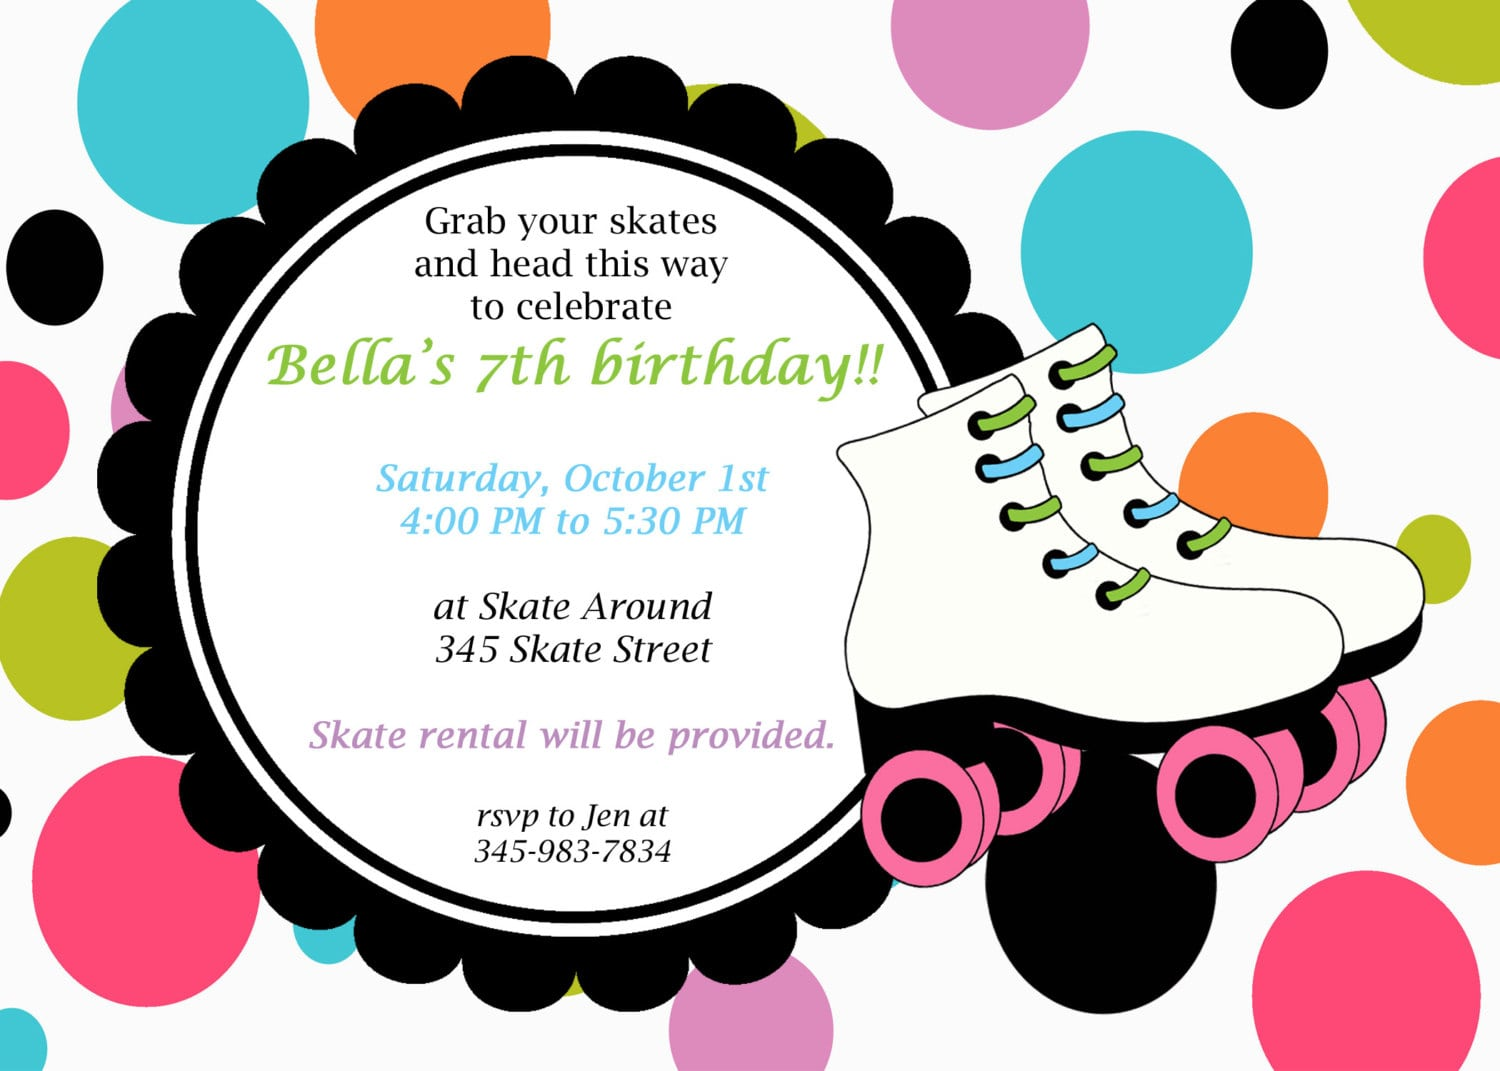 Skating Party Invitations Free Printables is great invitation sample